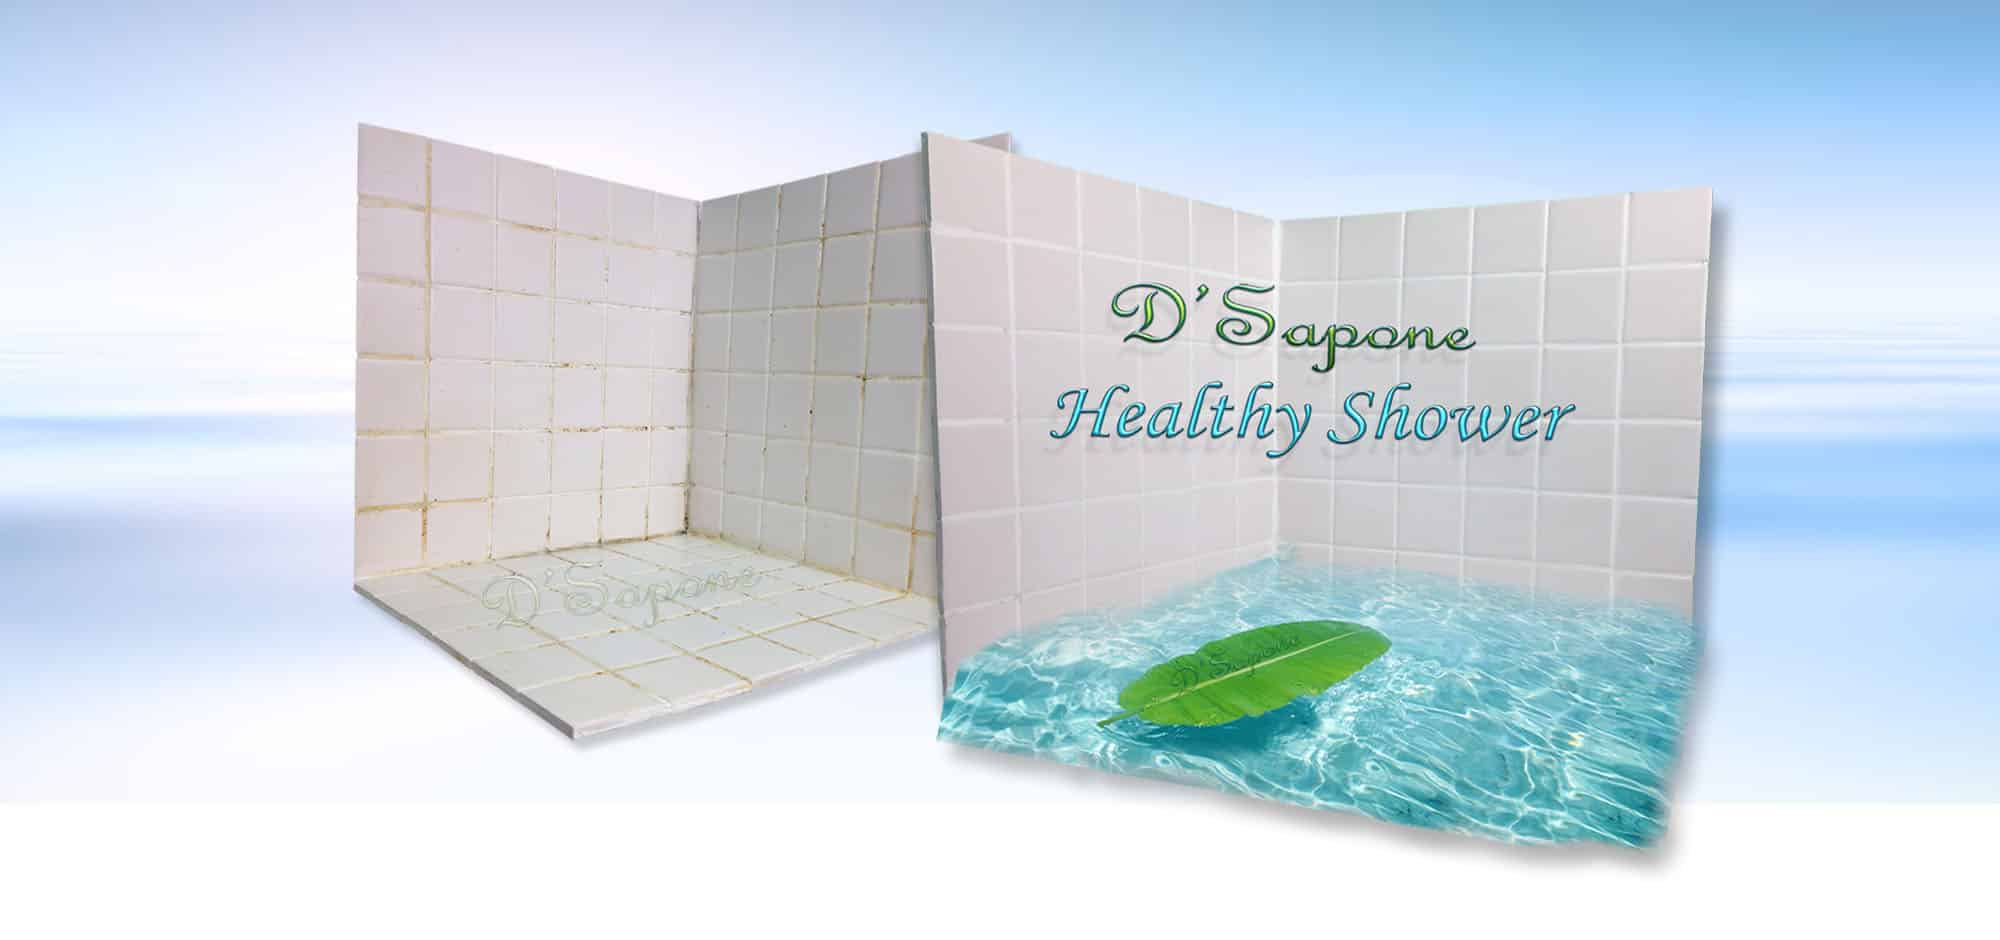 DSapone healthy shower restoration